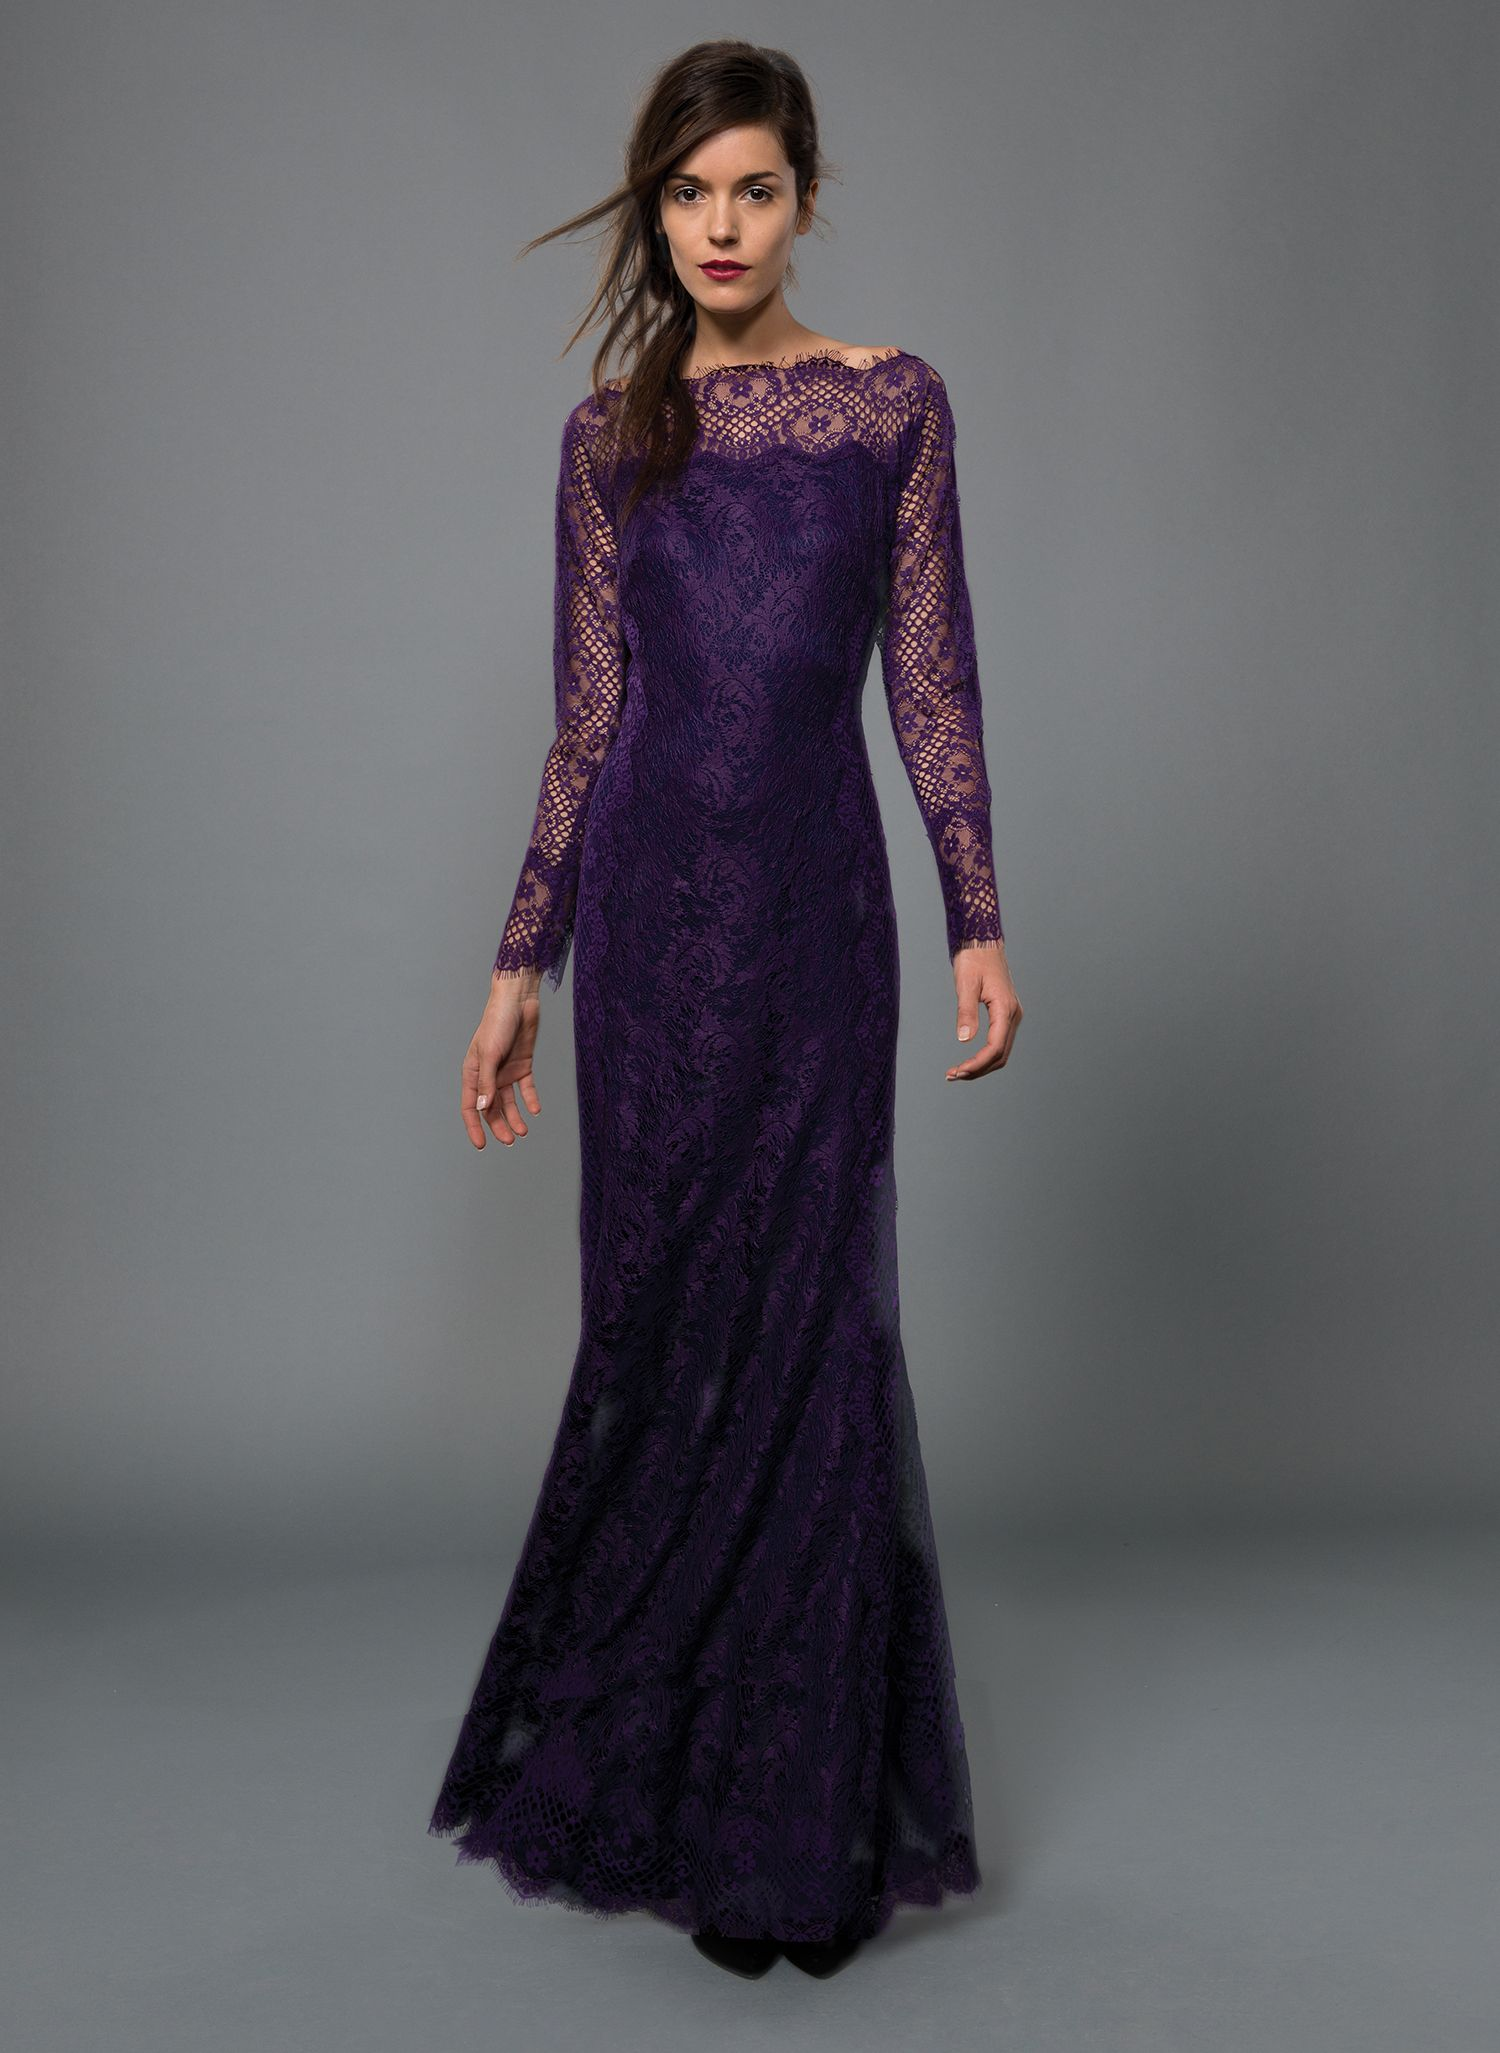 Chantilly lace long sleeve scallop neckline gown in deep amethyst